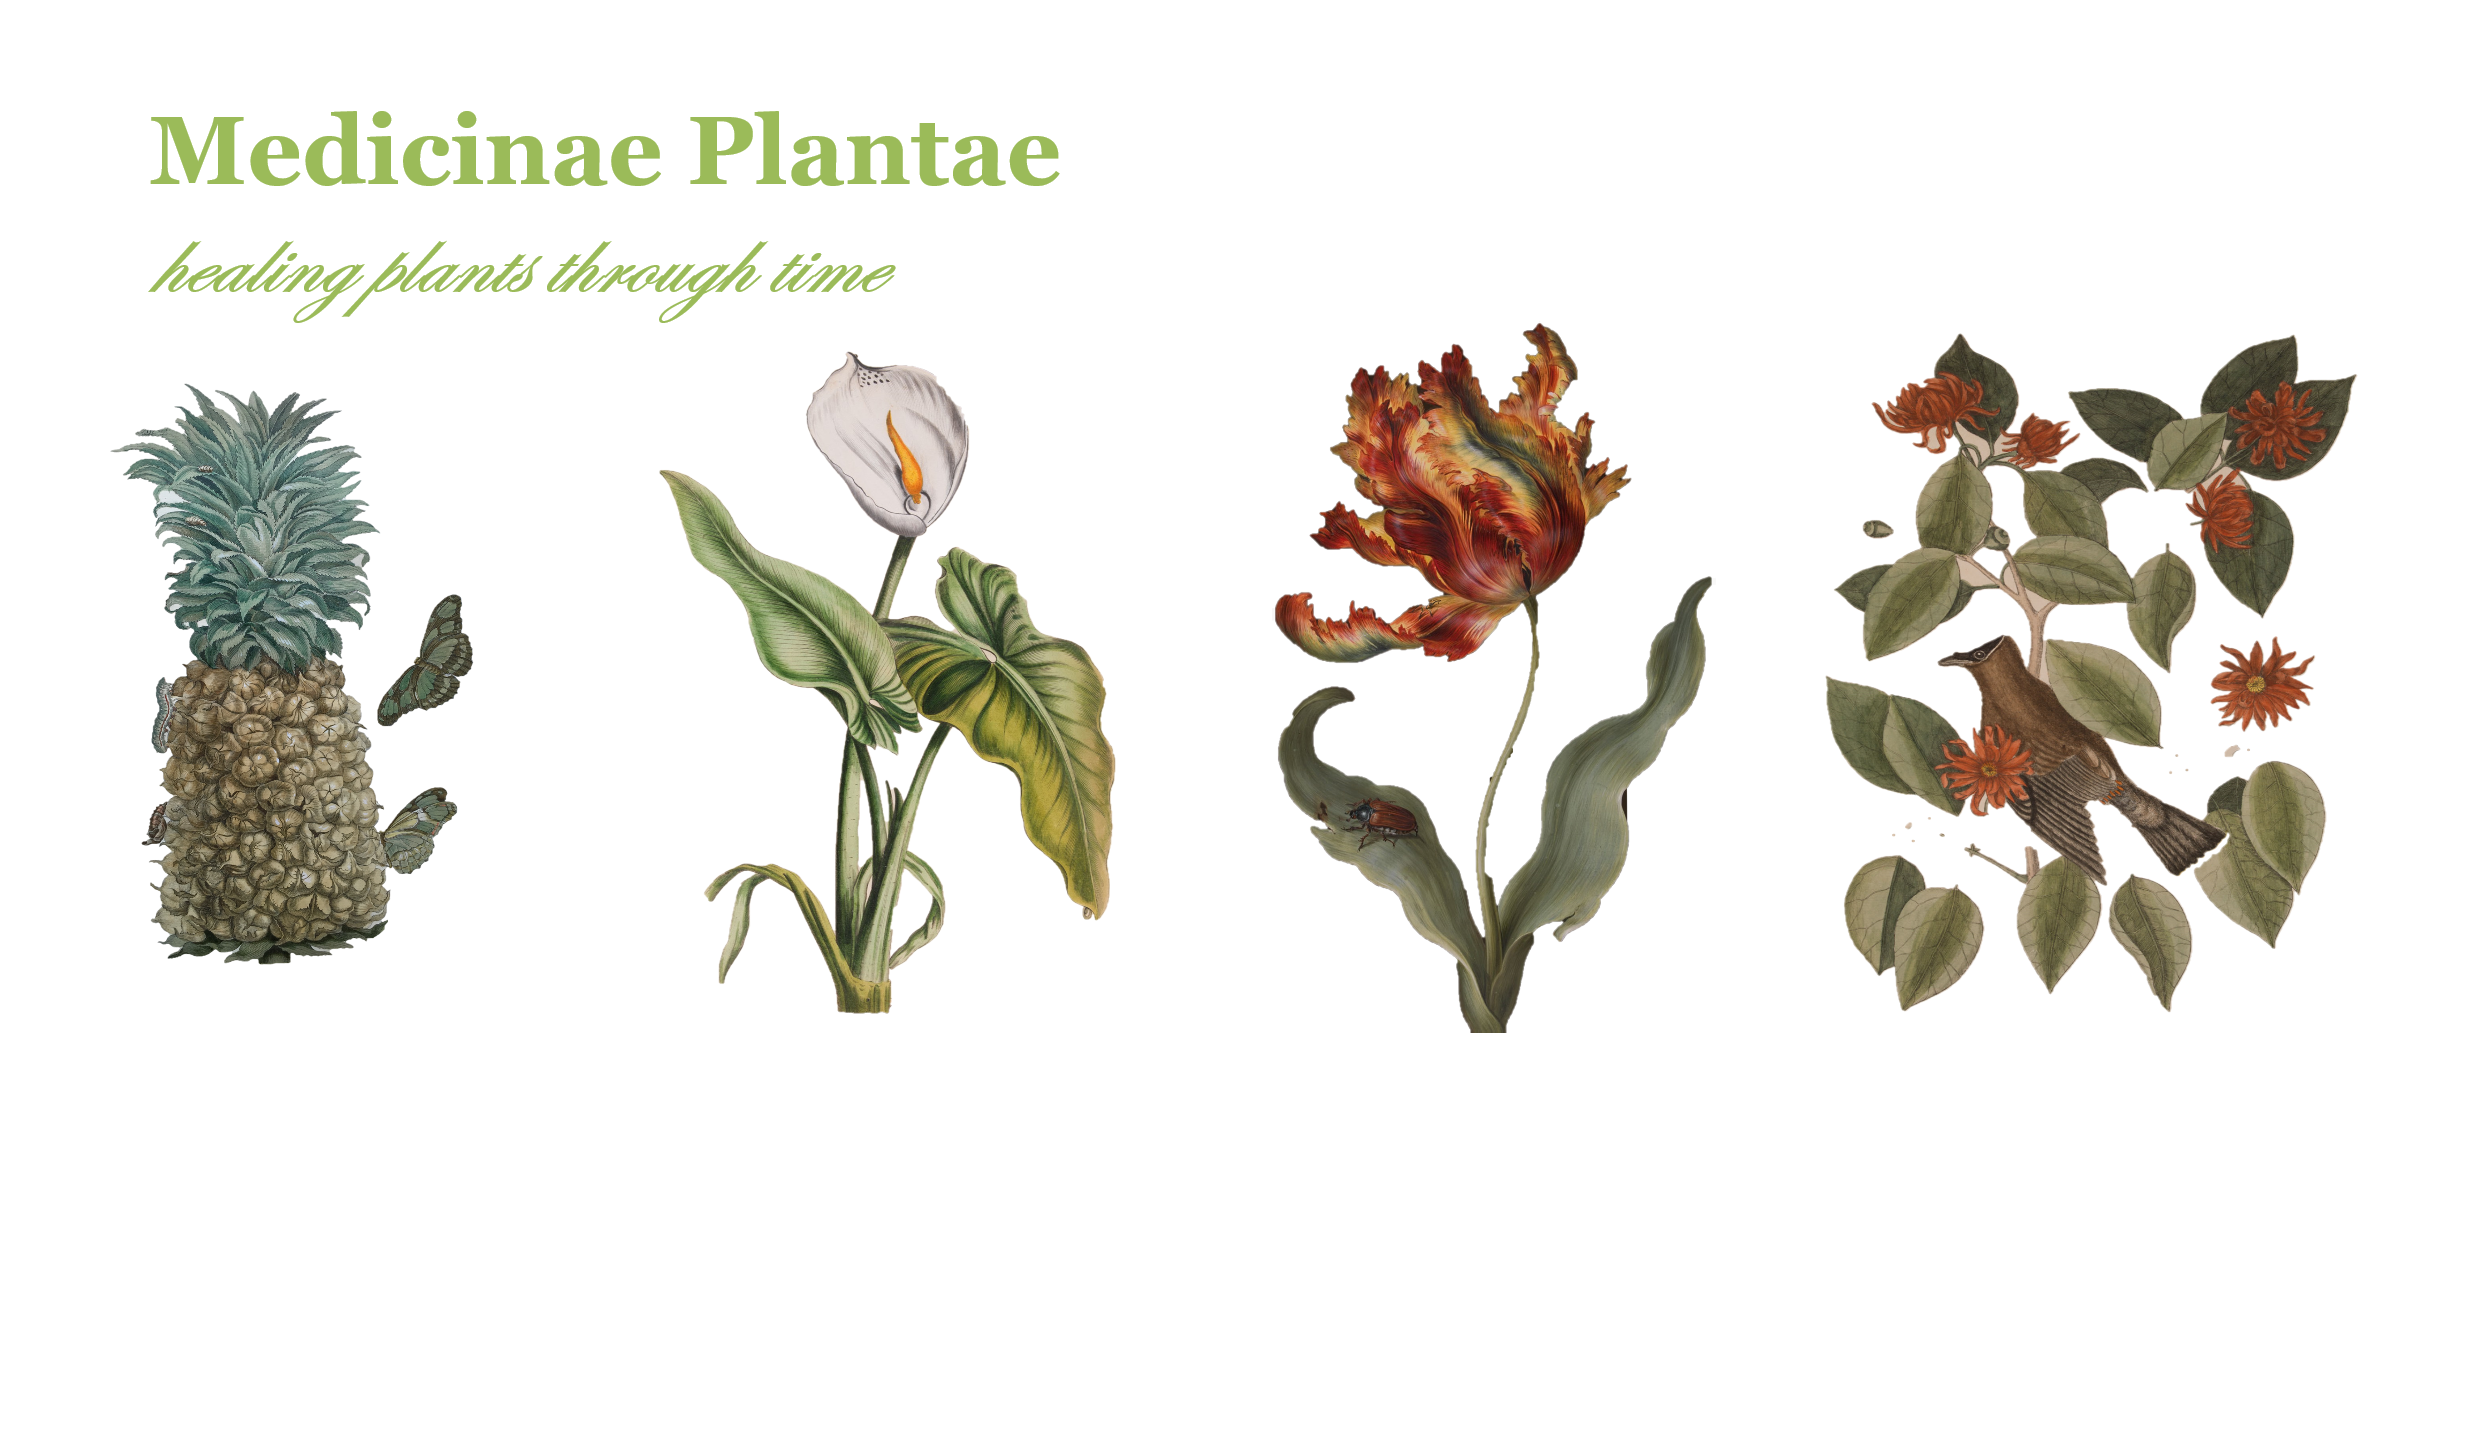 Medicinae Plantae: healing plants through time